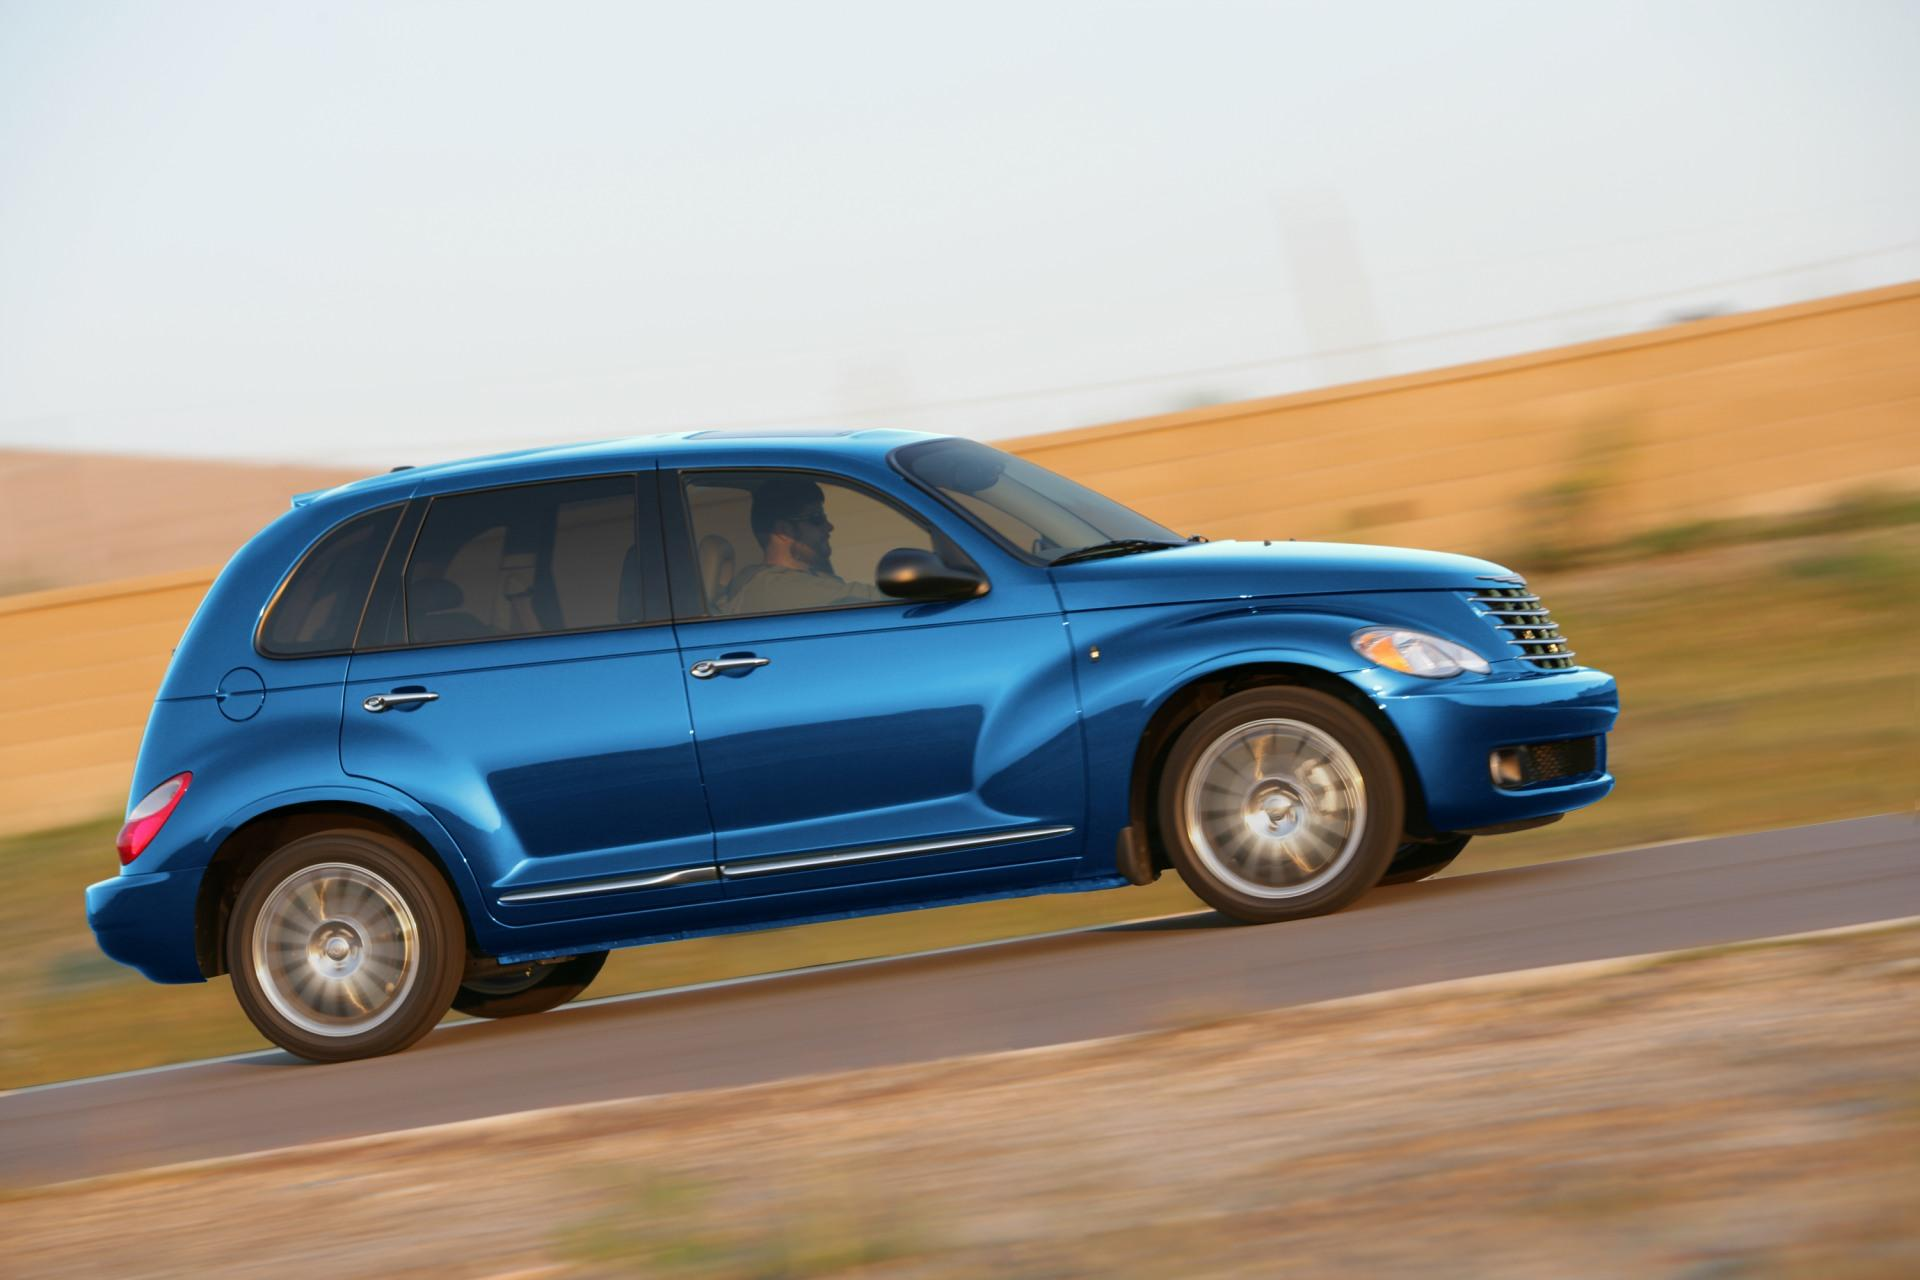 2010 chrysler pt cruiser classic wallpaper and image gallery